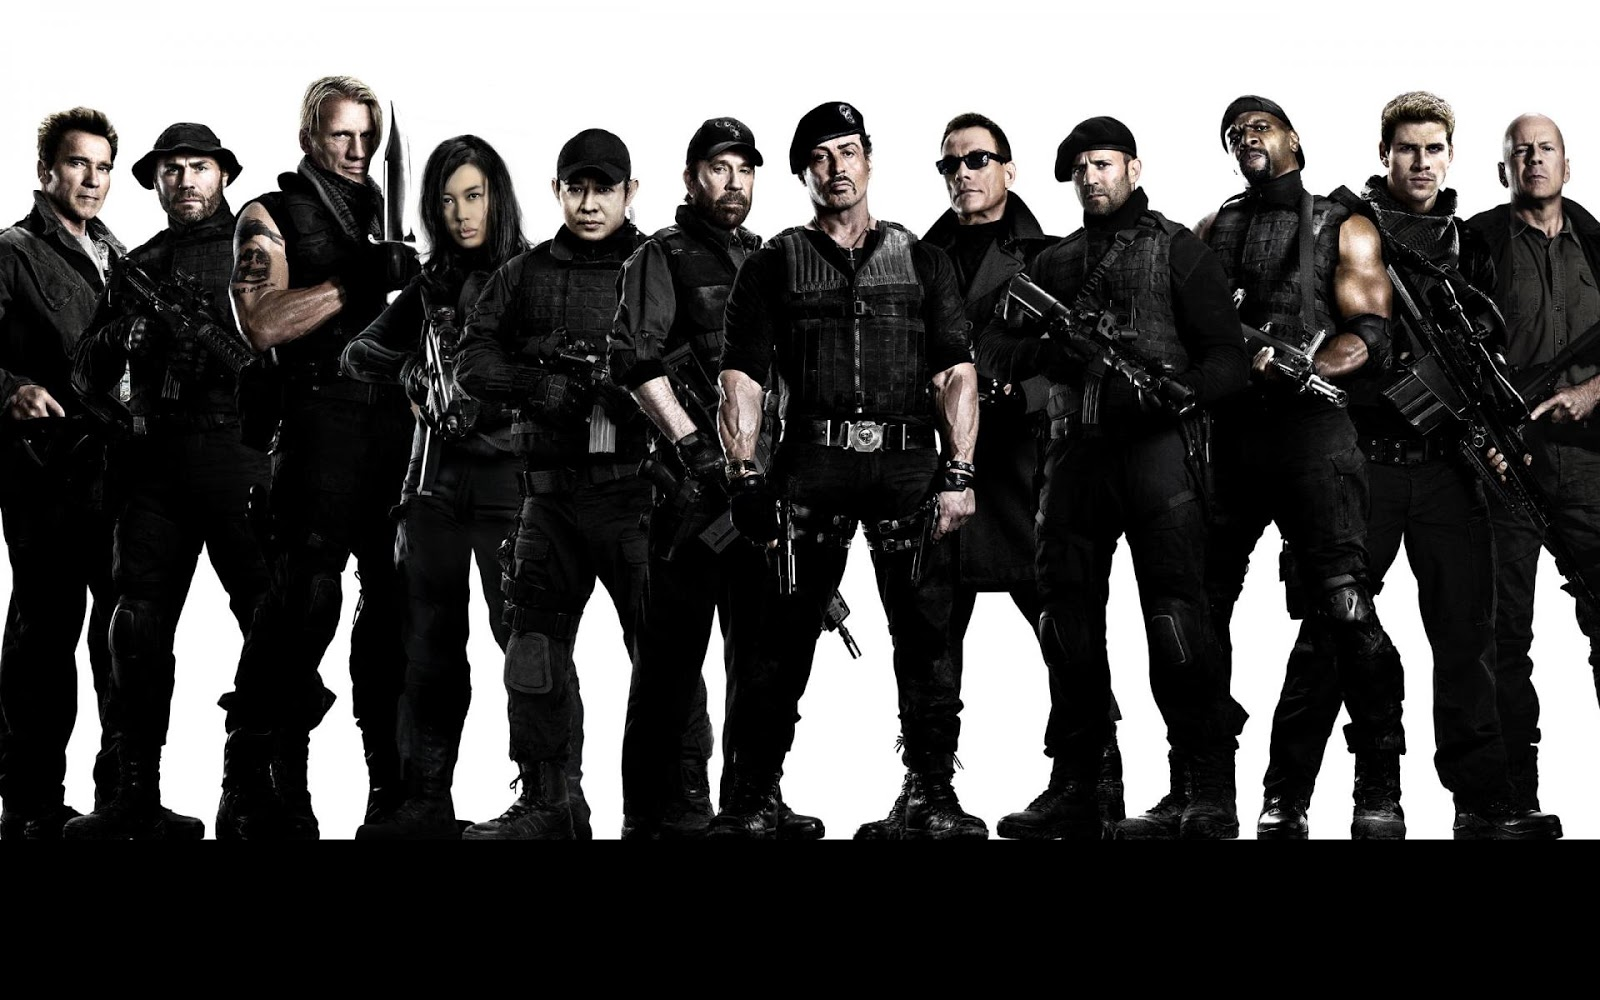 Sylvester Stallone In Expendables 2 Wallpapers: The Expendables 2, Sylvester Stallone, Filme, Wallpaper